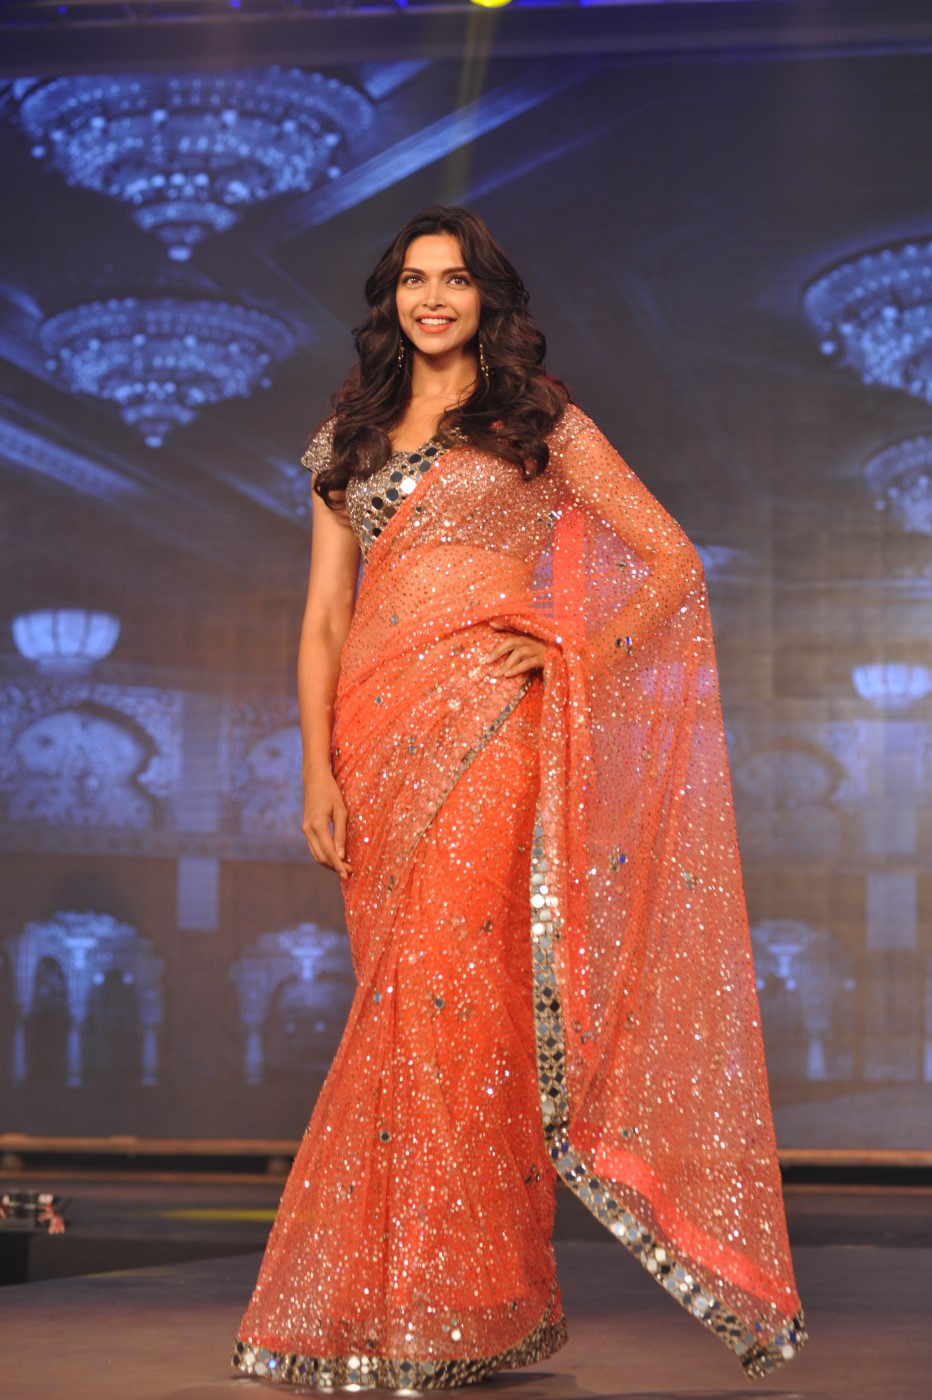 Deepika Padukone - Stunning in Saree - Chamber of beauty